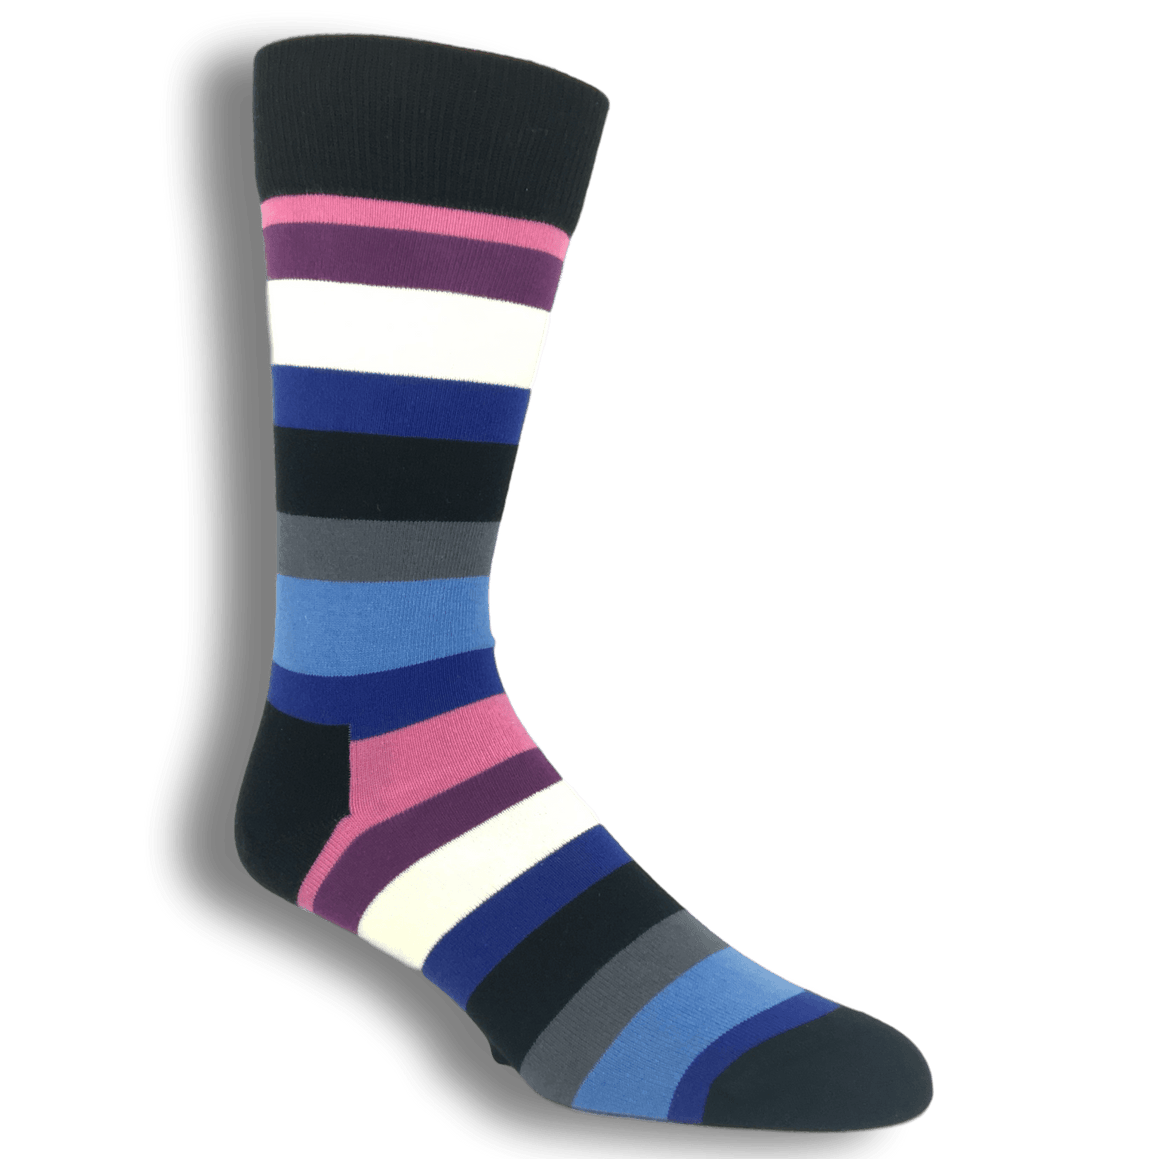 Black, Pink, and Blue Stripe Socks by Happy Socks - The Sock Spot